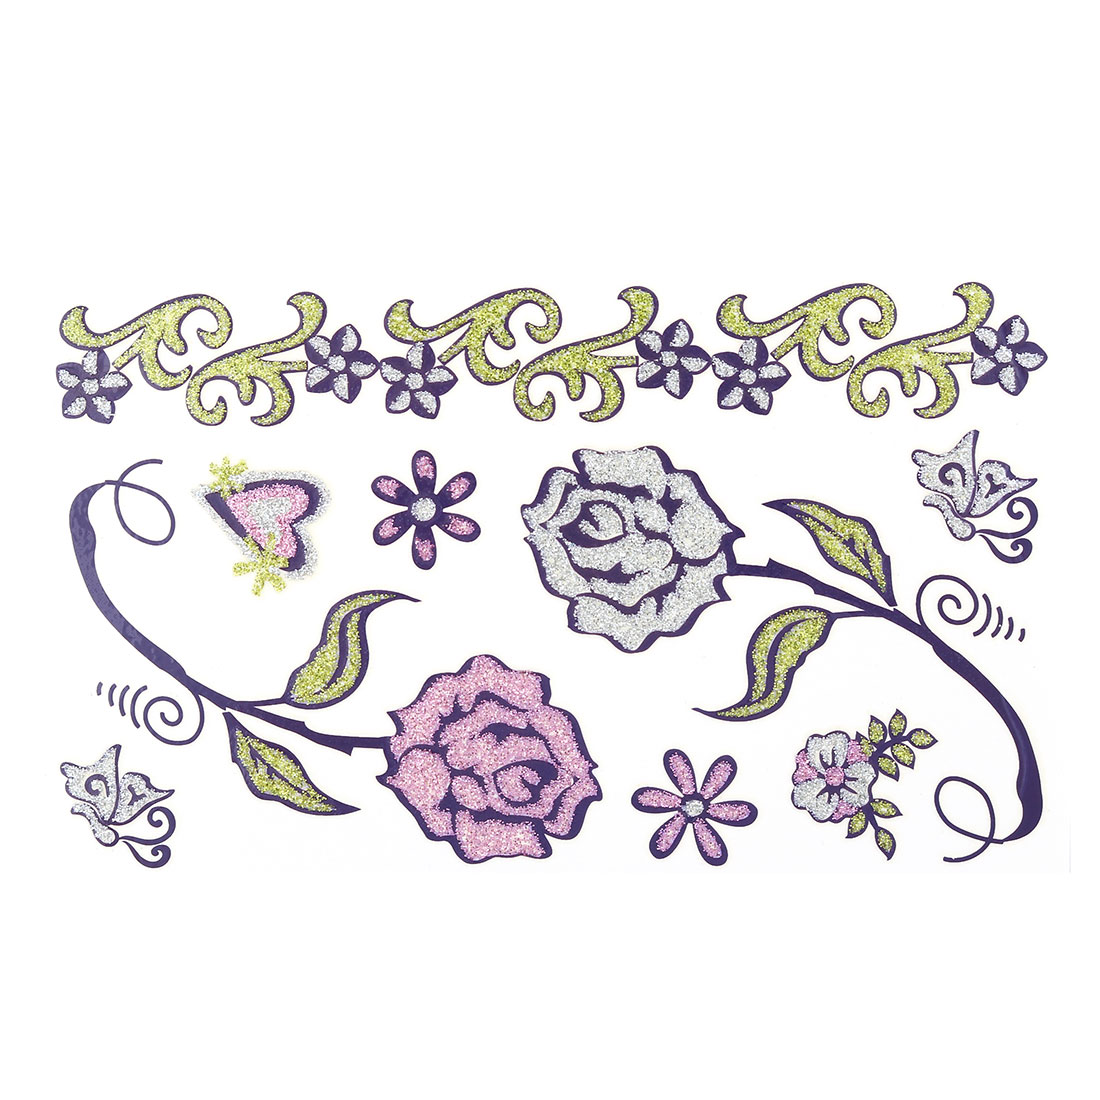 Lady Flower Pattern Removable Body Art Paper Sticker Decal Temporary Tattoo Sheet